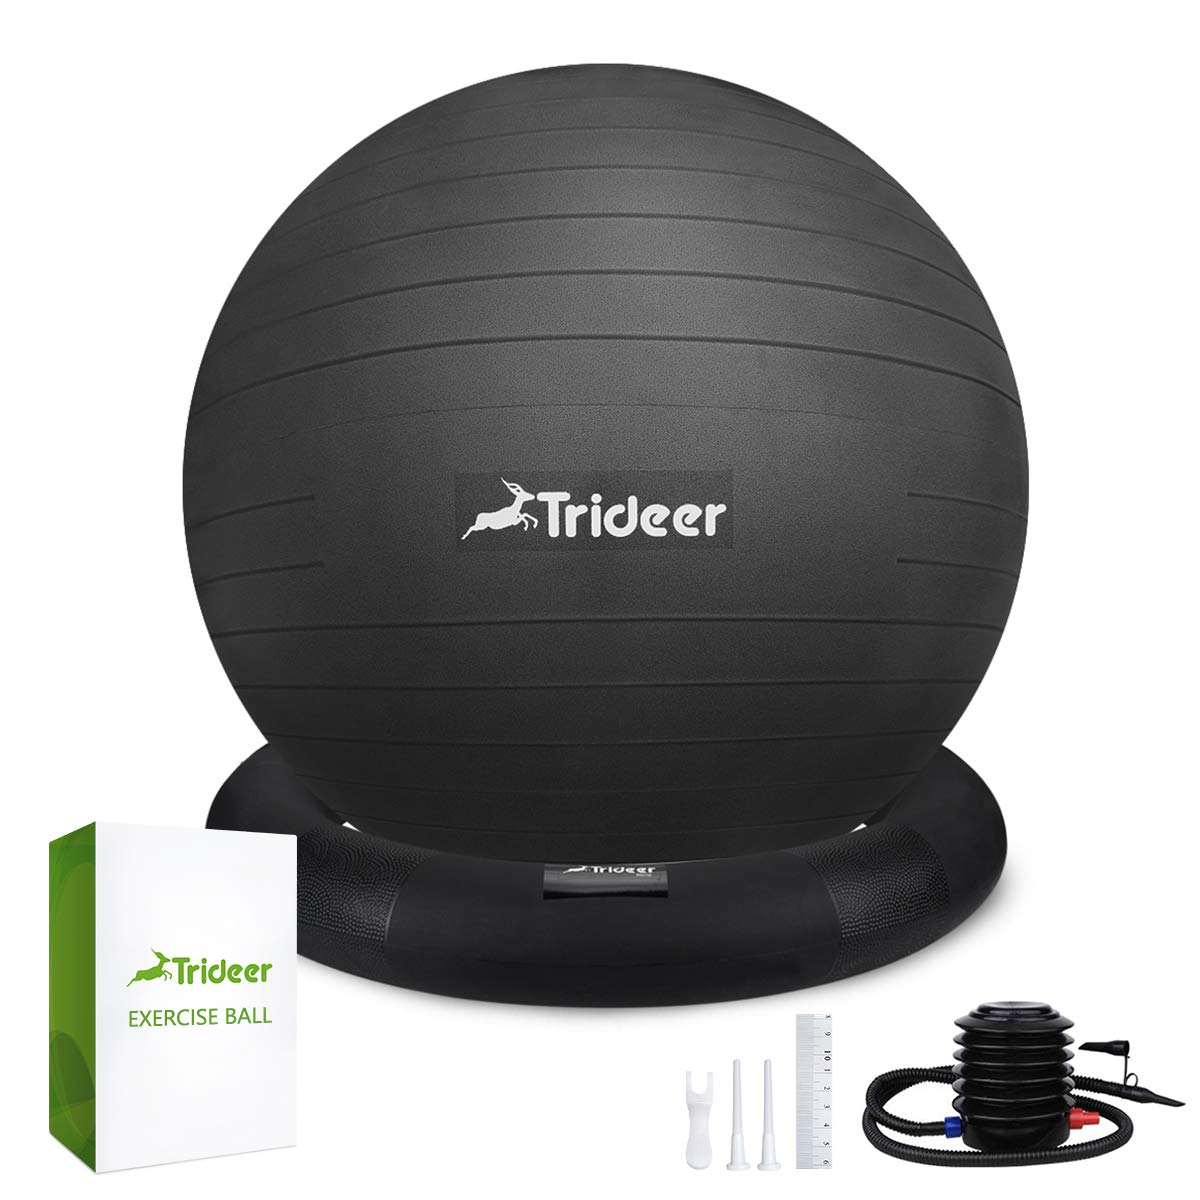 Trideer Ball Chair - Exercise Stability Yoga Ball with Base for Home and Office Desk, Ball Seat, Flexible Seating with Ring & Pump, Improves Balance, Back Pain, Core Strength & Posture(Ball with Ring by Trideer